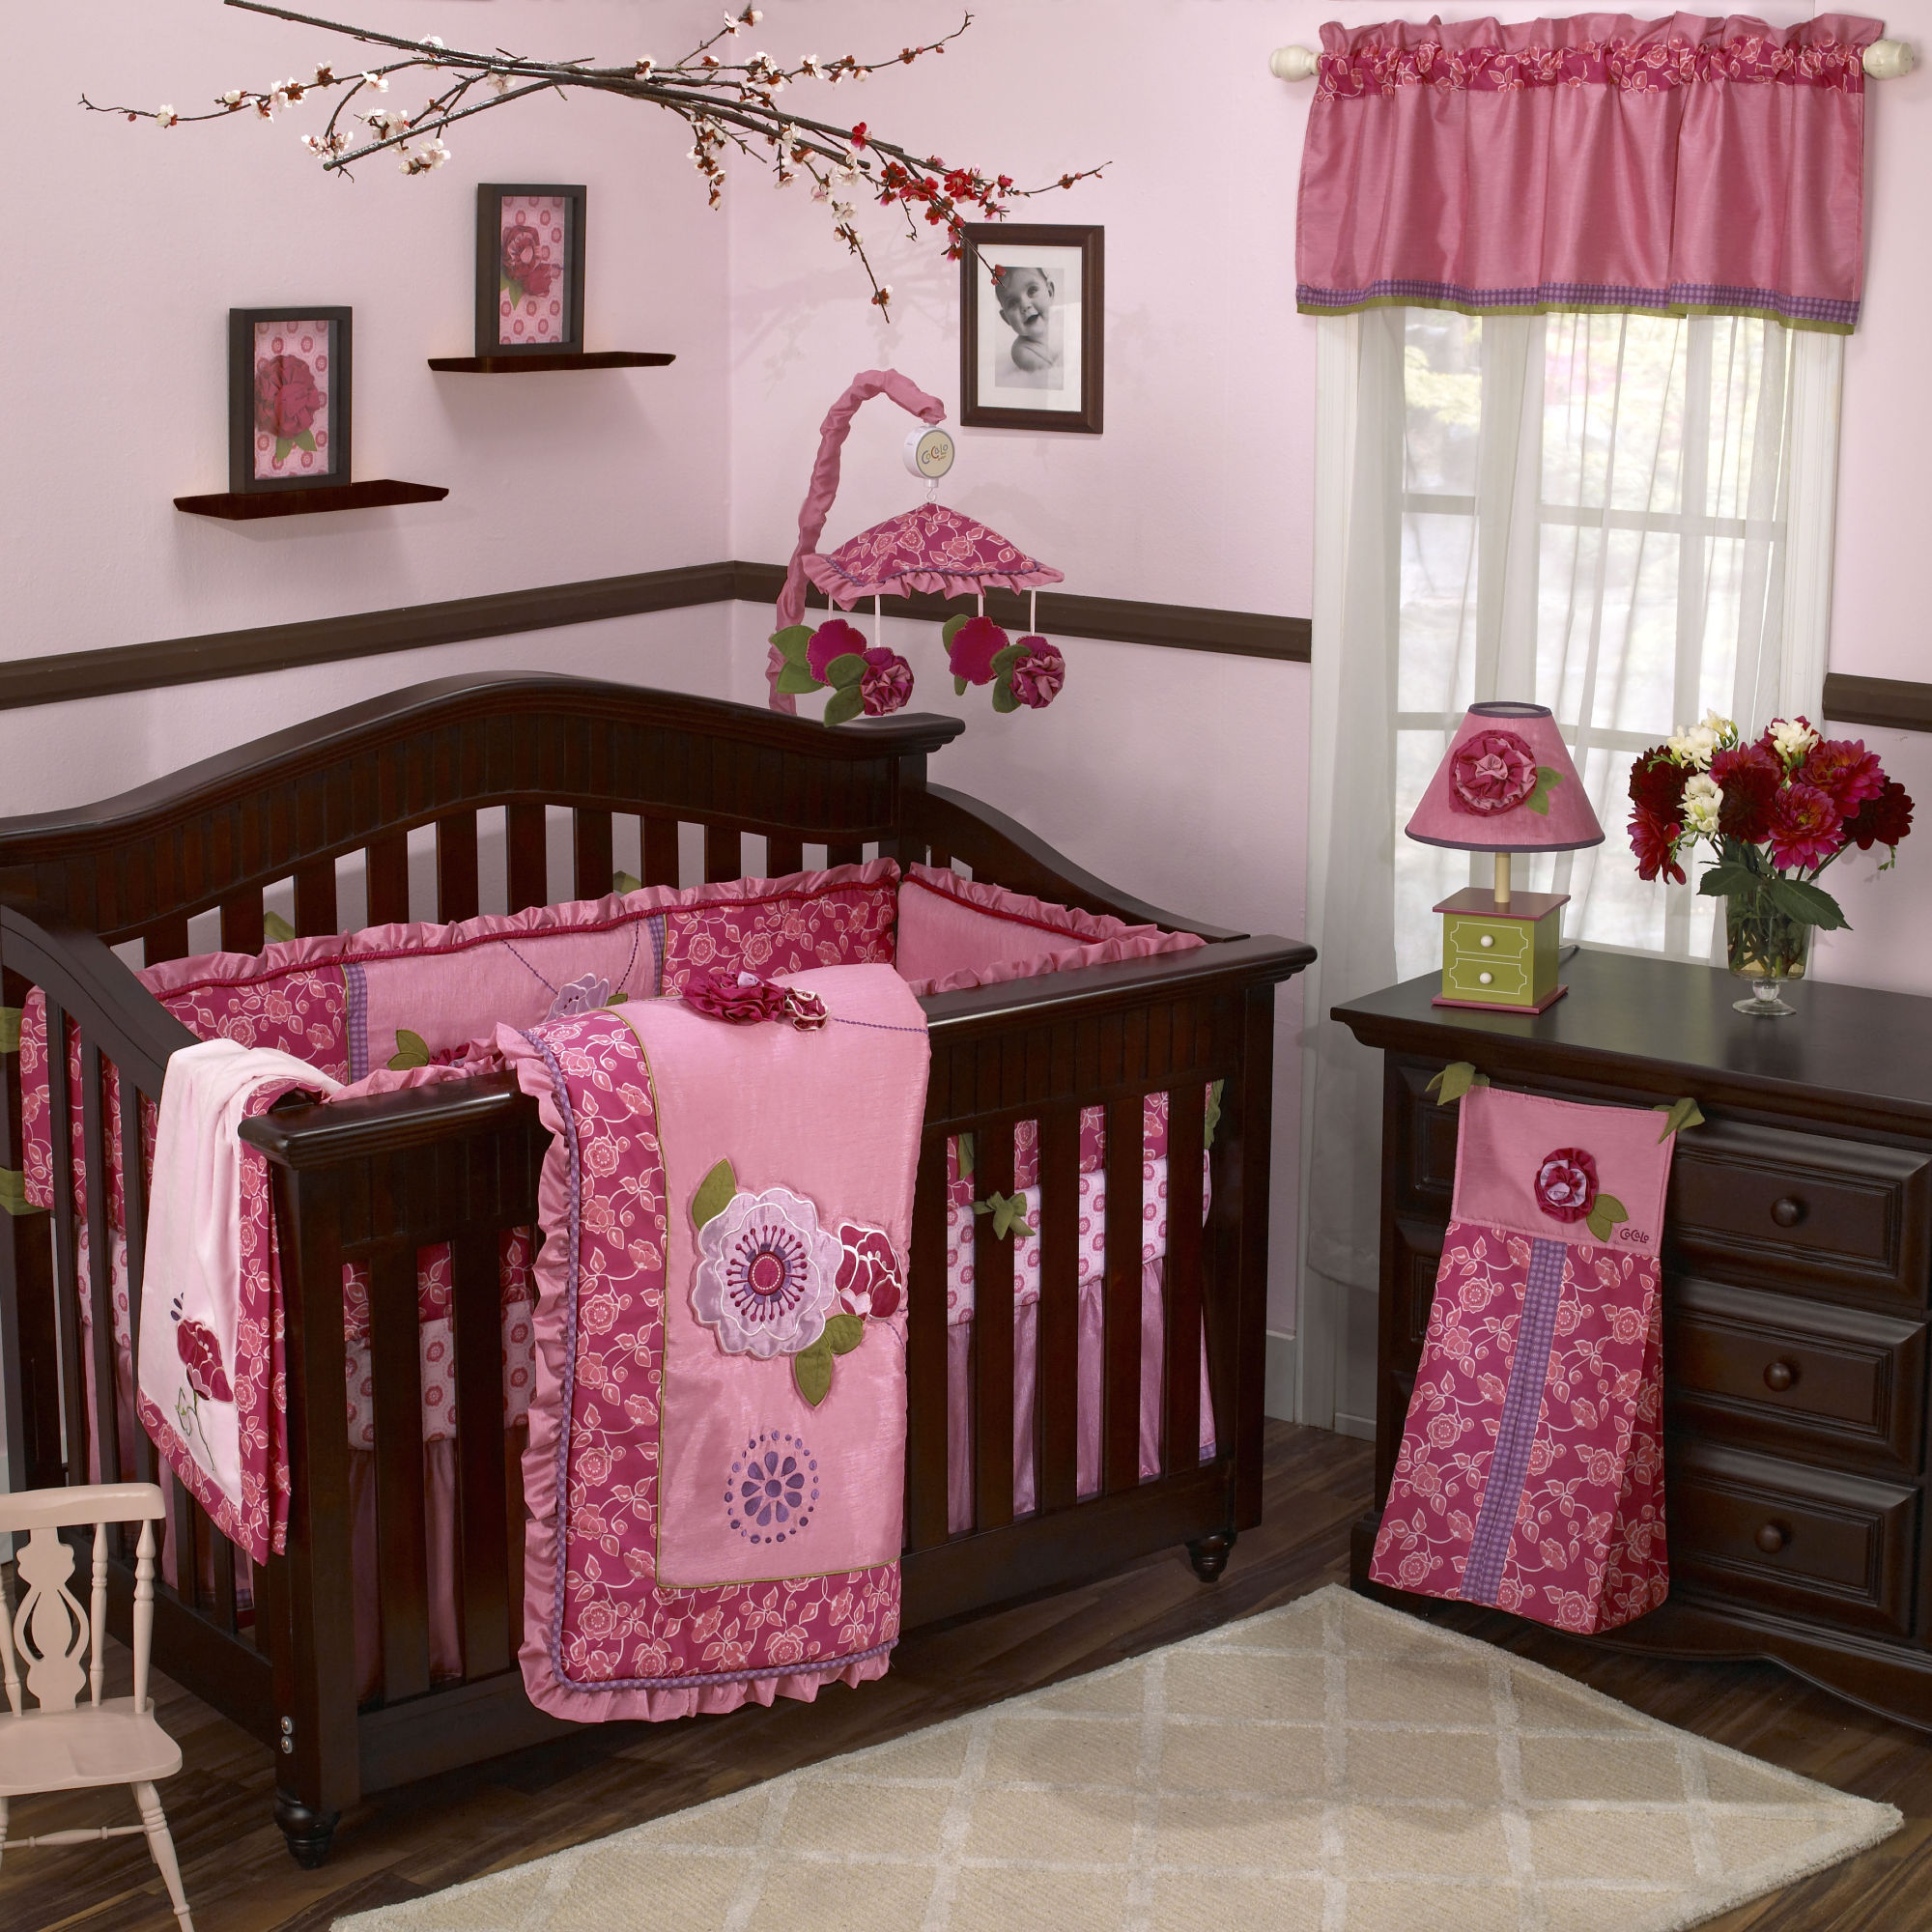 Genial Seductive Wooden Crib Also Dresser Plus Pink Accent For Girl Nursery Room